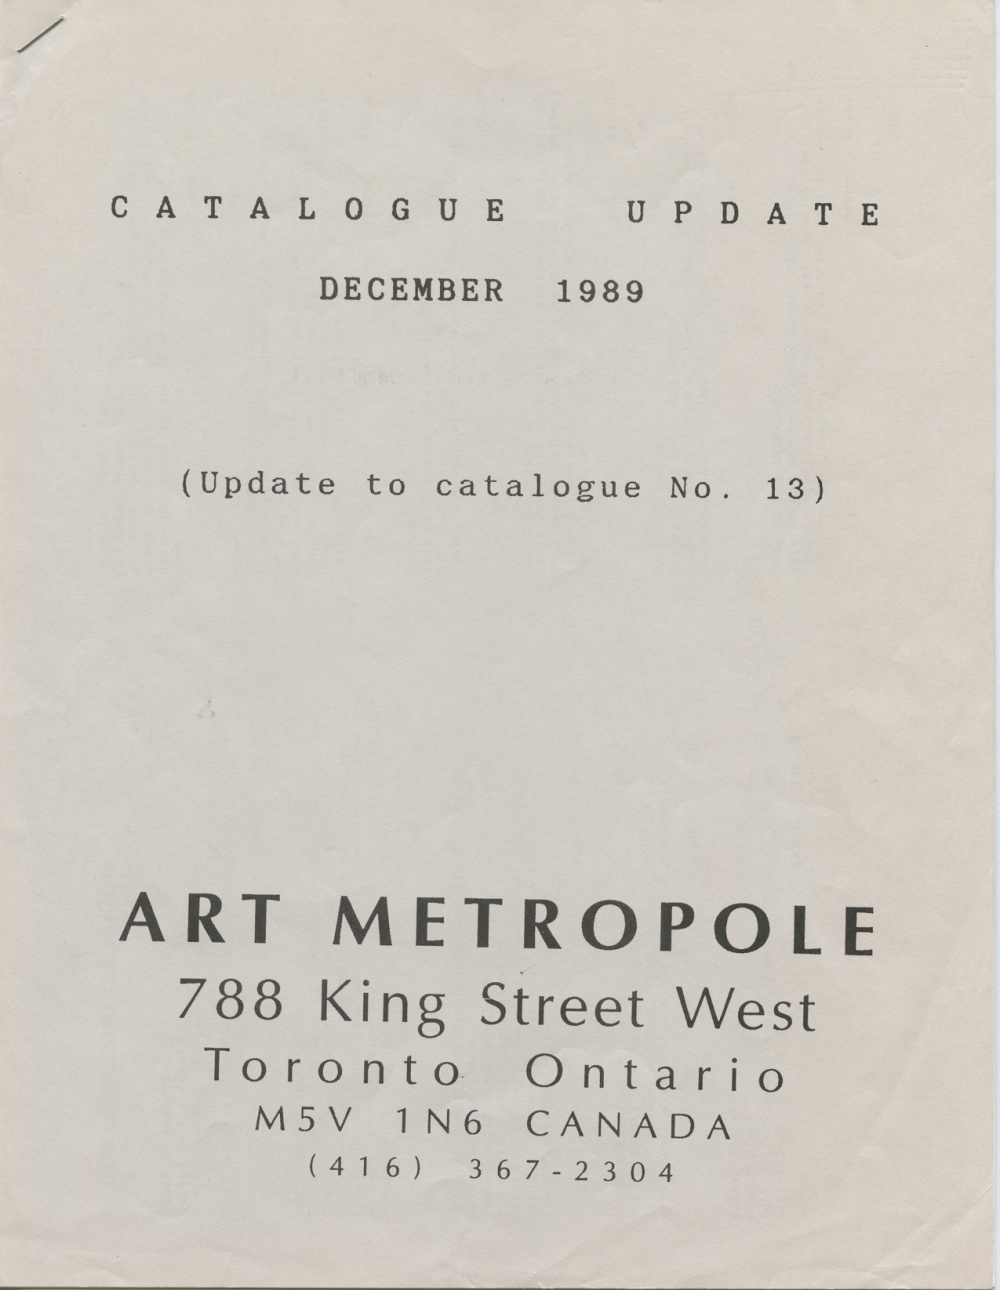 Art Metropole. Catalogue Update: December 1989